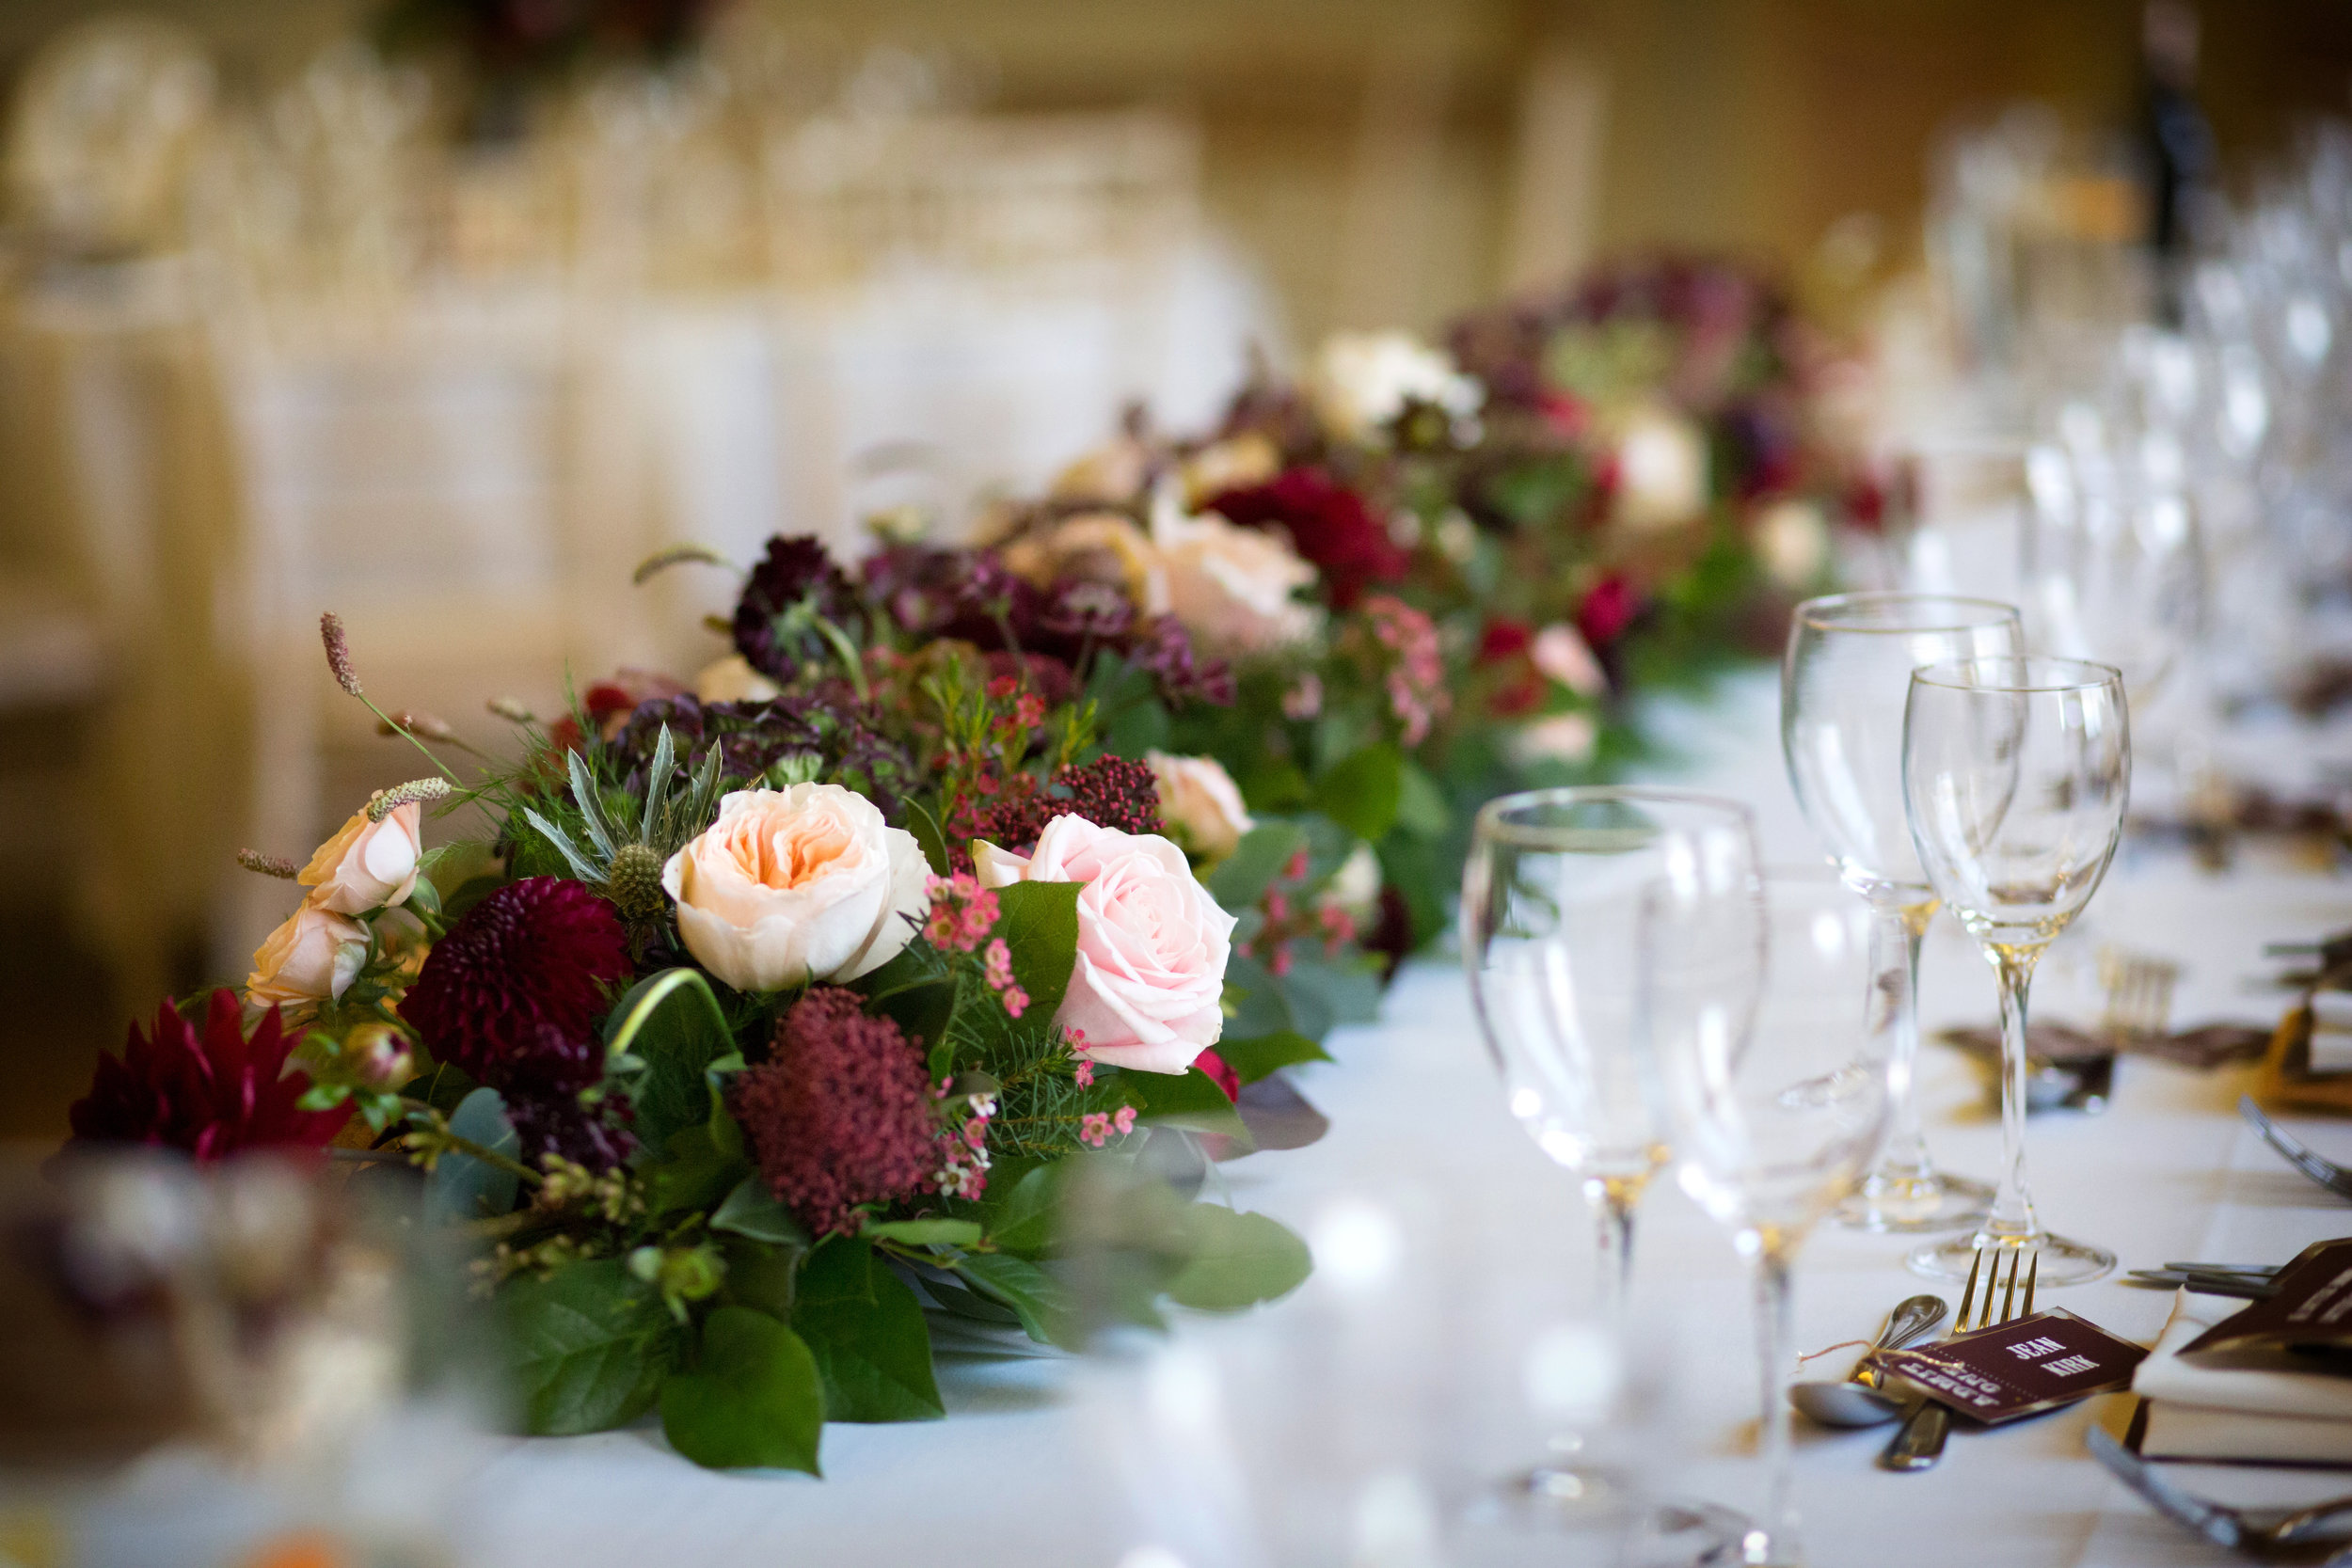 Top table runner at Stowe House, Buckinghamshire